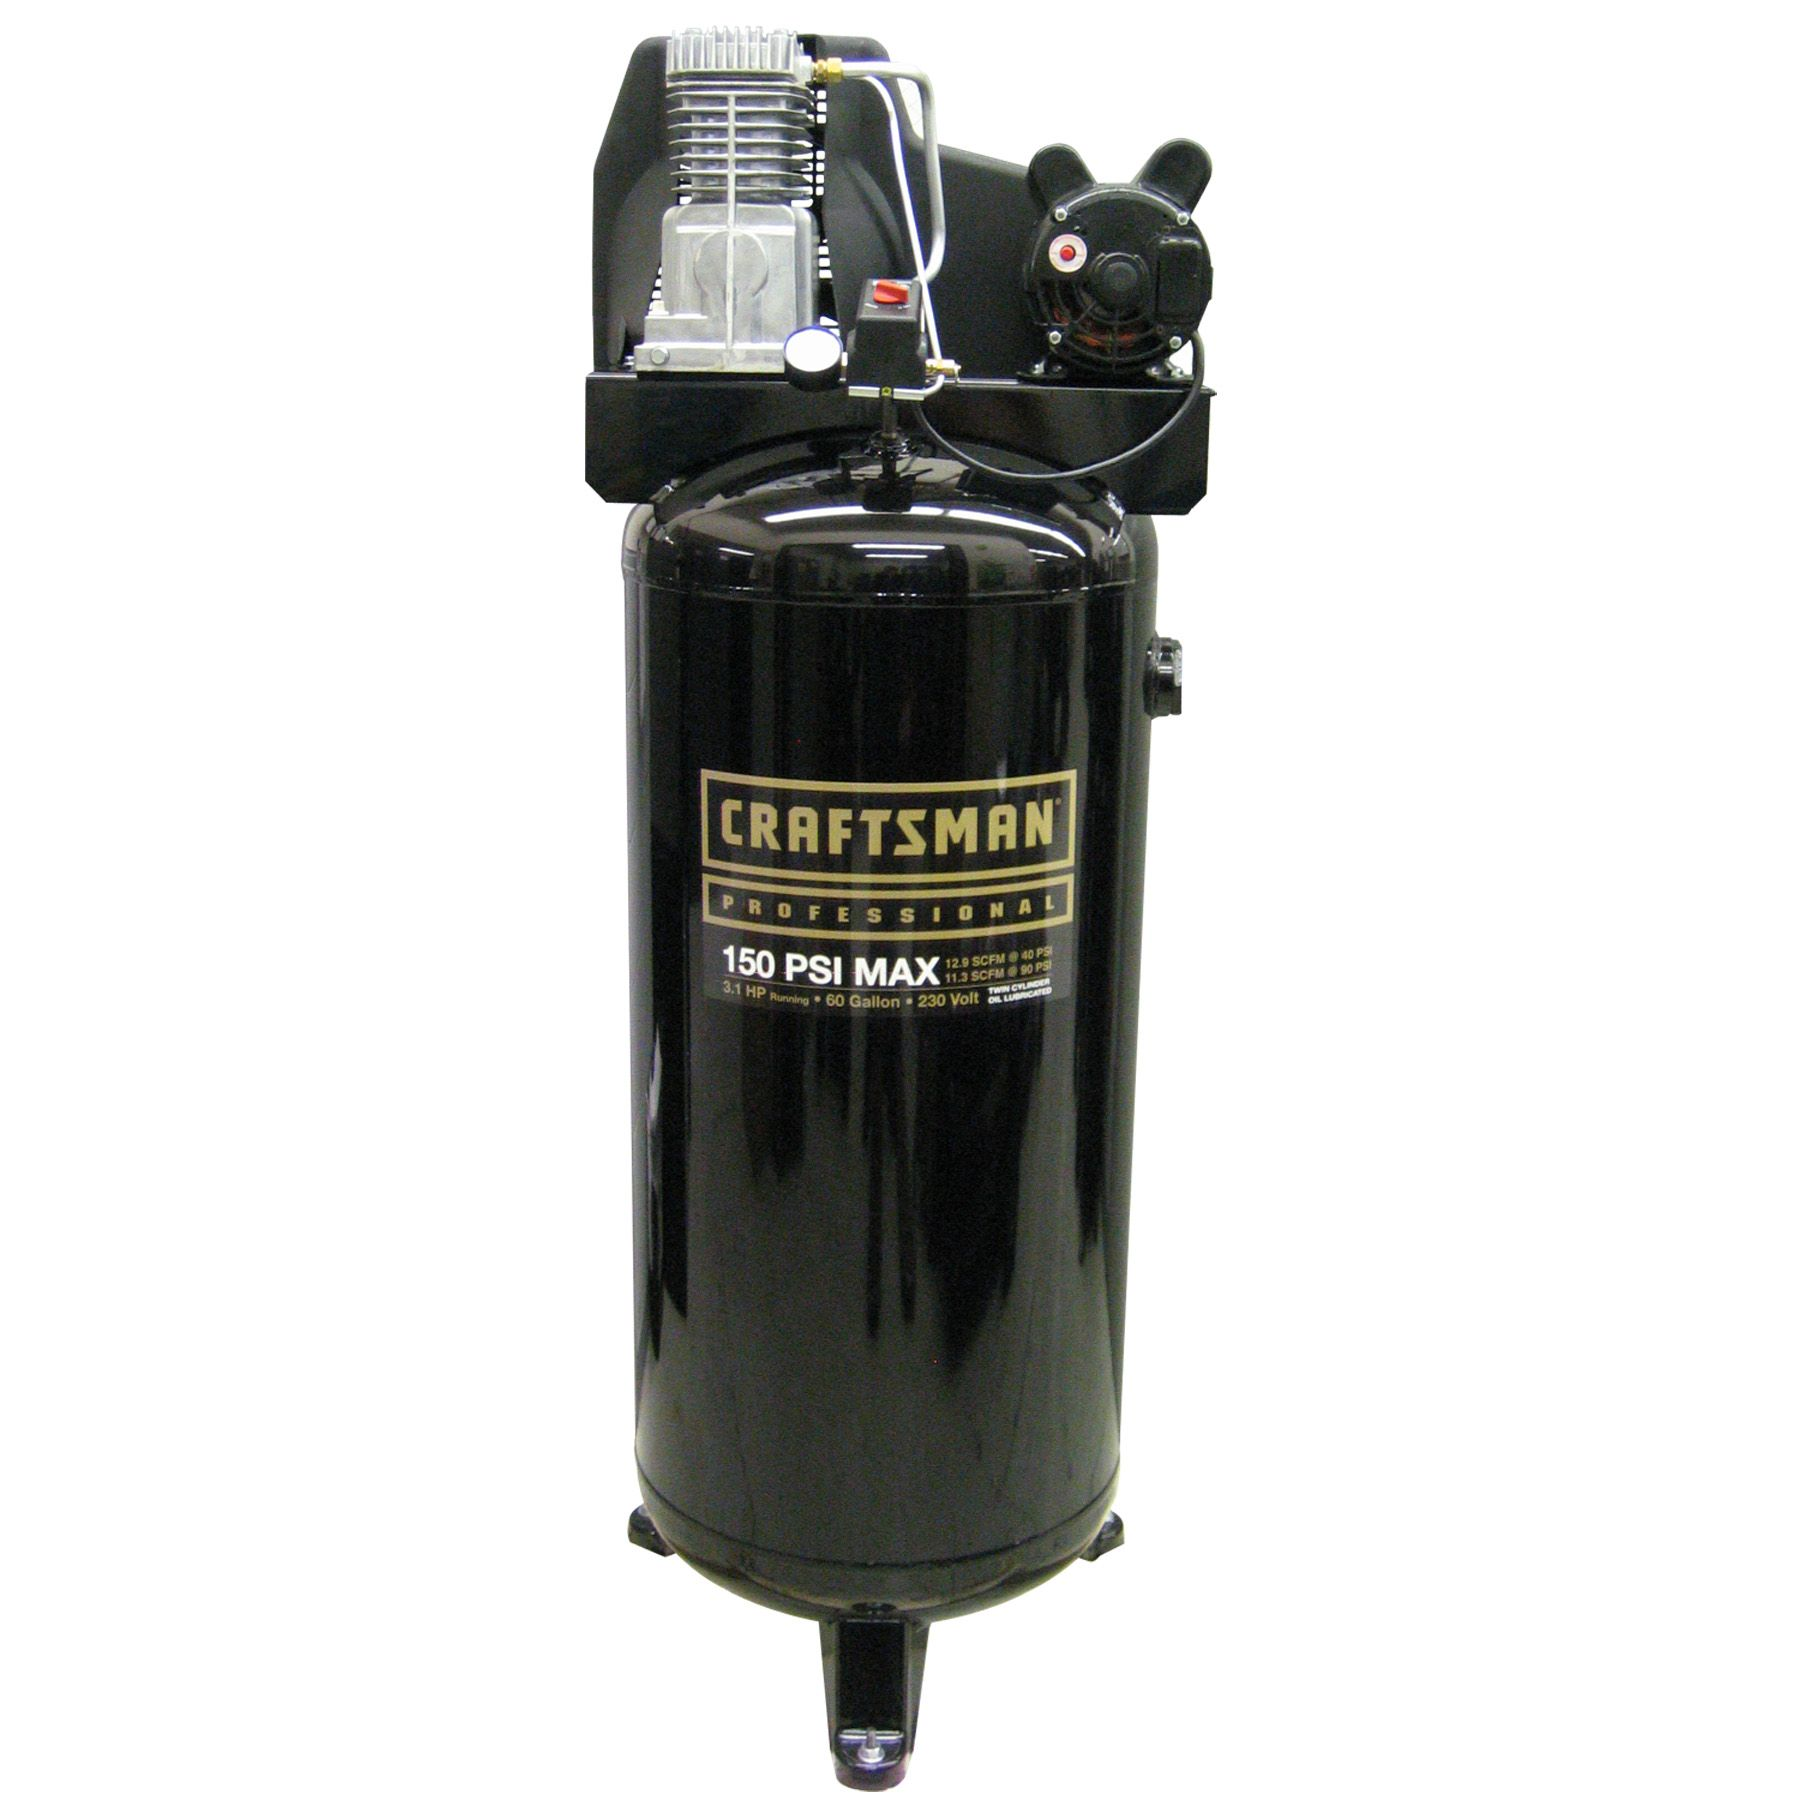 Craftsman 60 gal. OilLubricated Air Compressor, Black